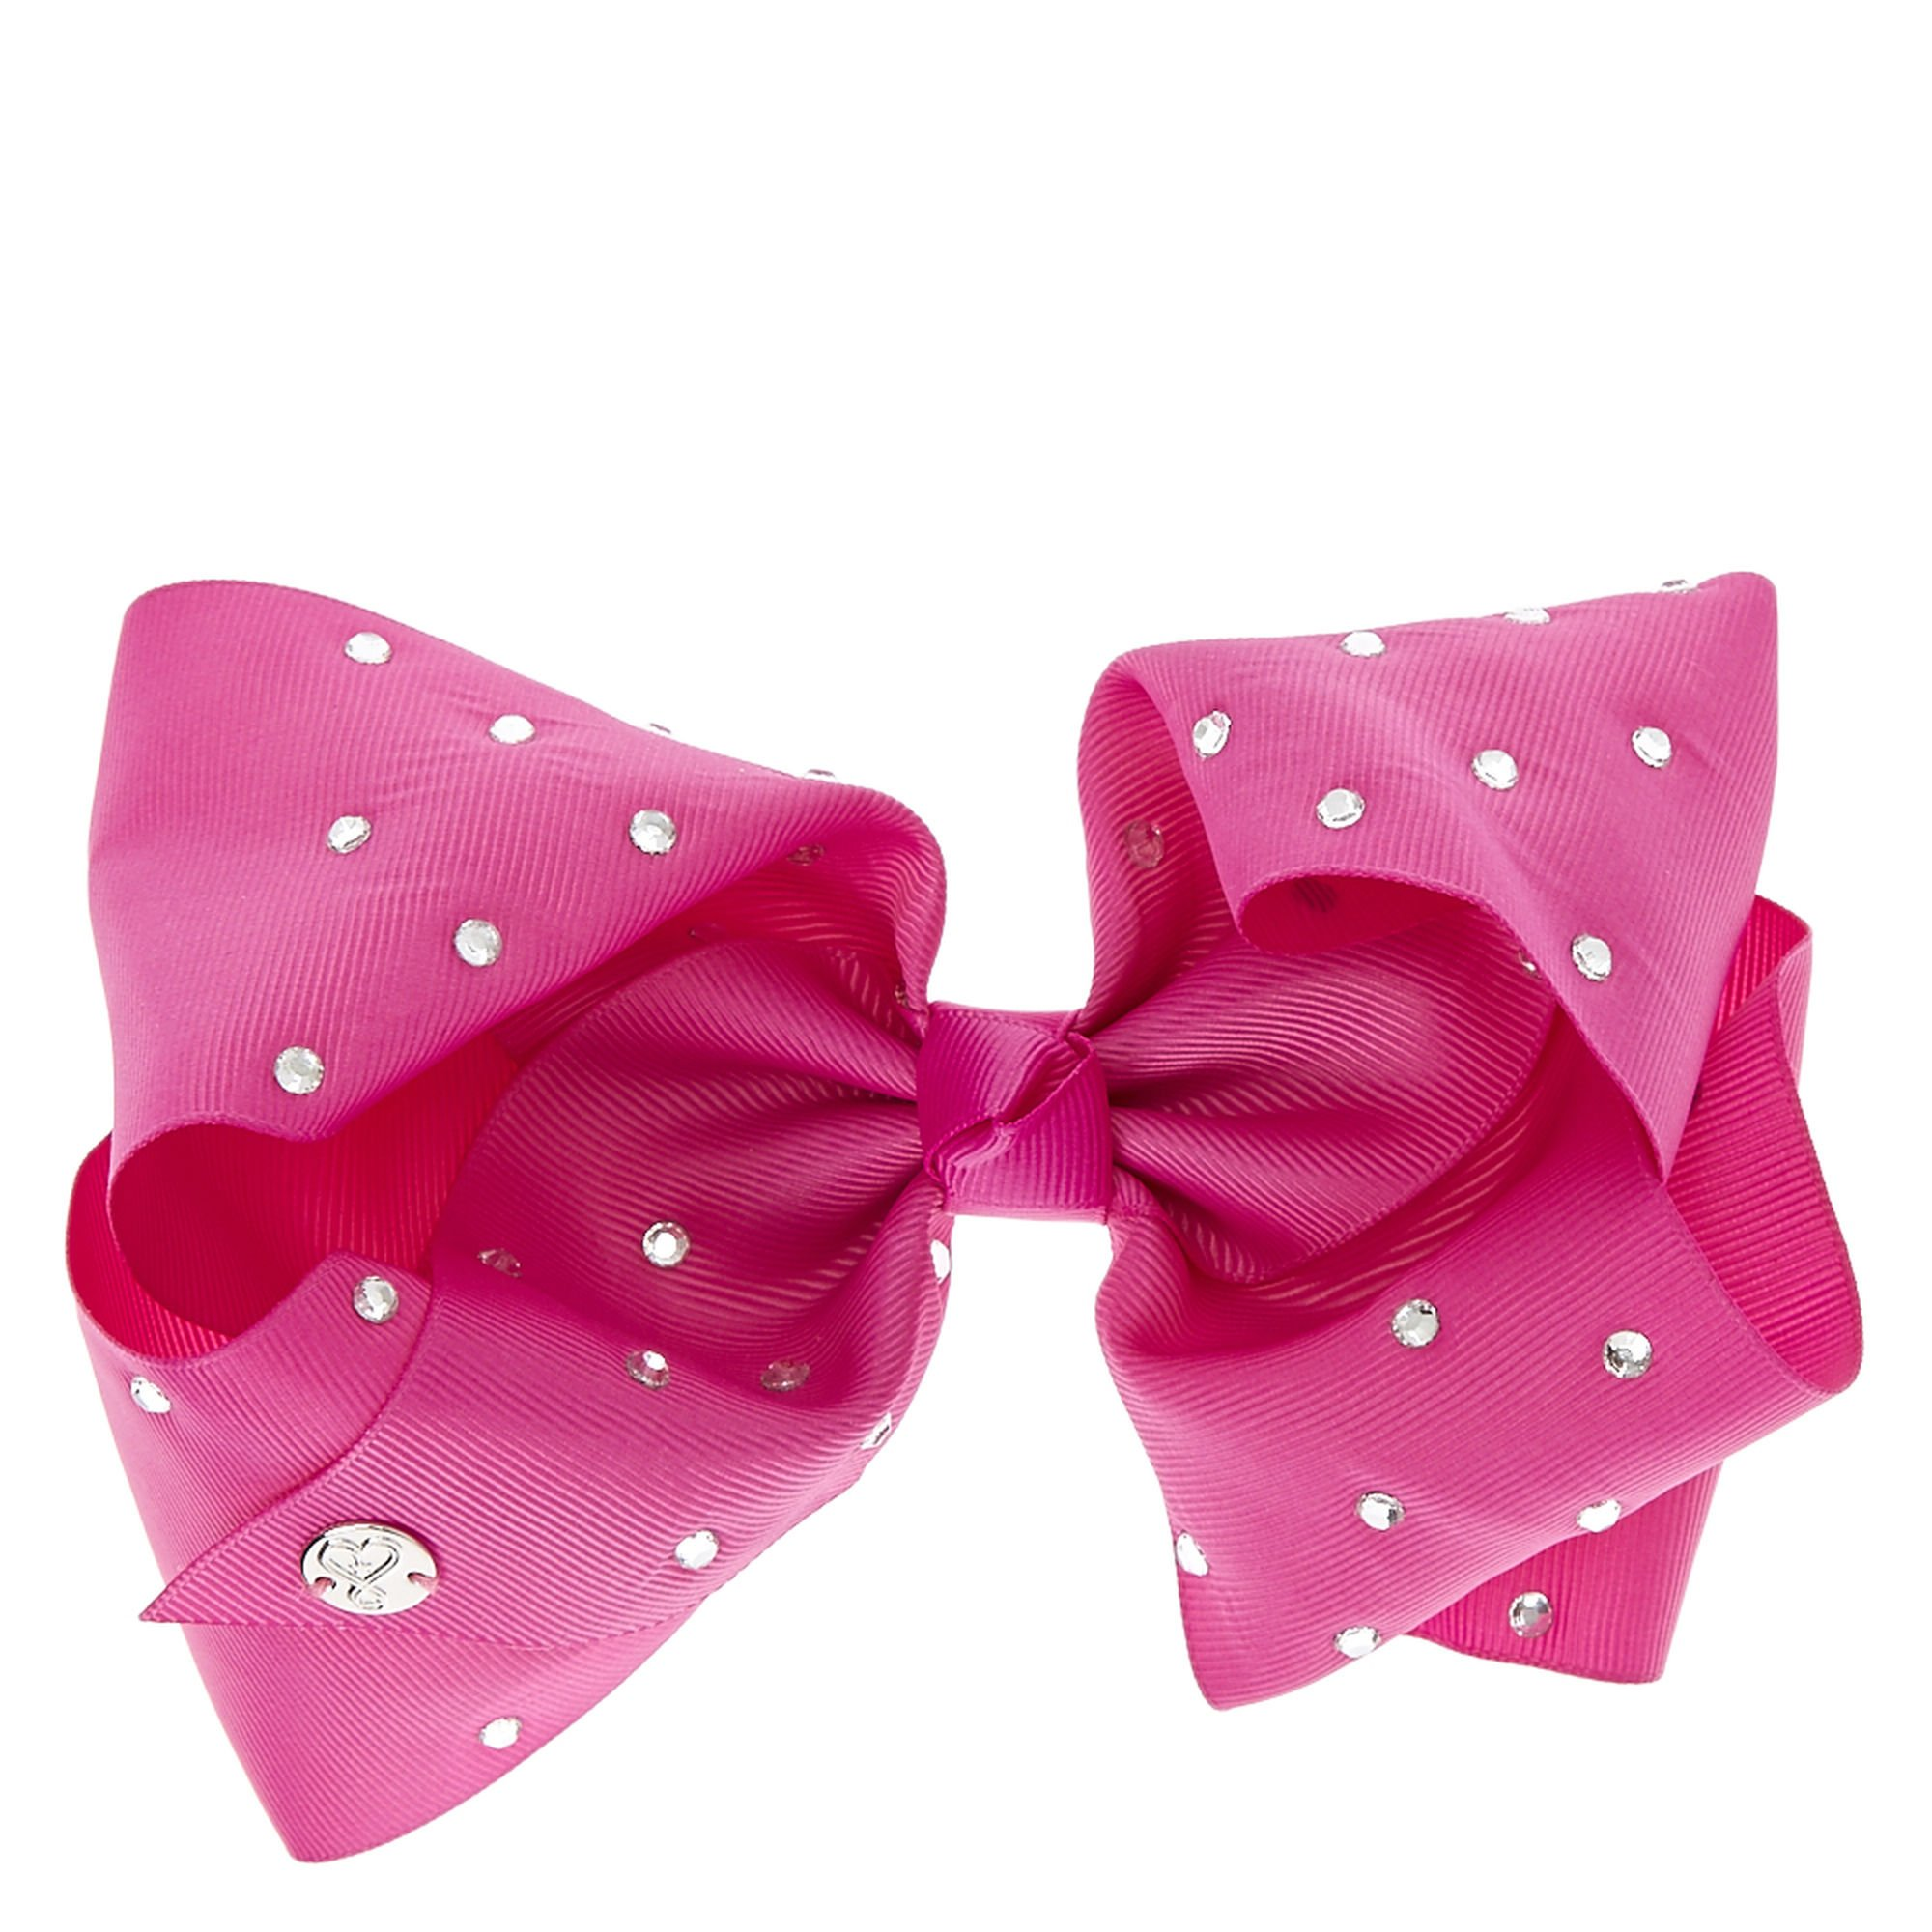 Online shopping for Clips - Hair Accessories from a great selection at Beauty & Personal Care Store.